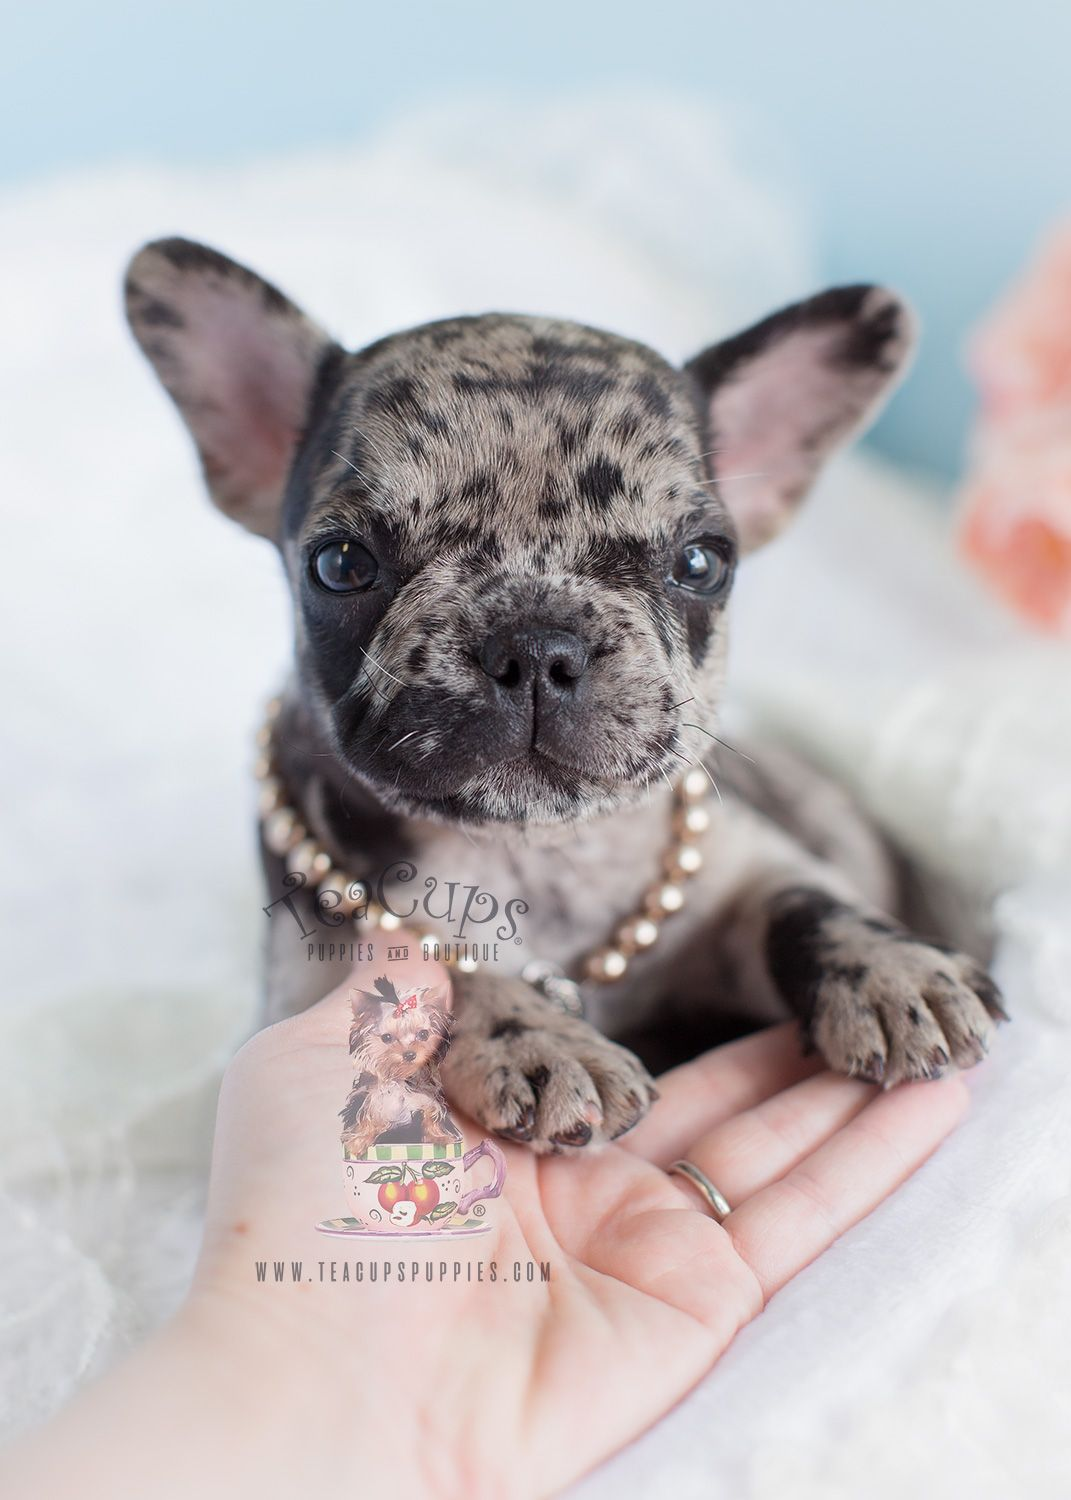 merle french bulldog puppy by teacups, puppies & boutique